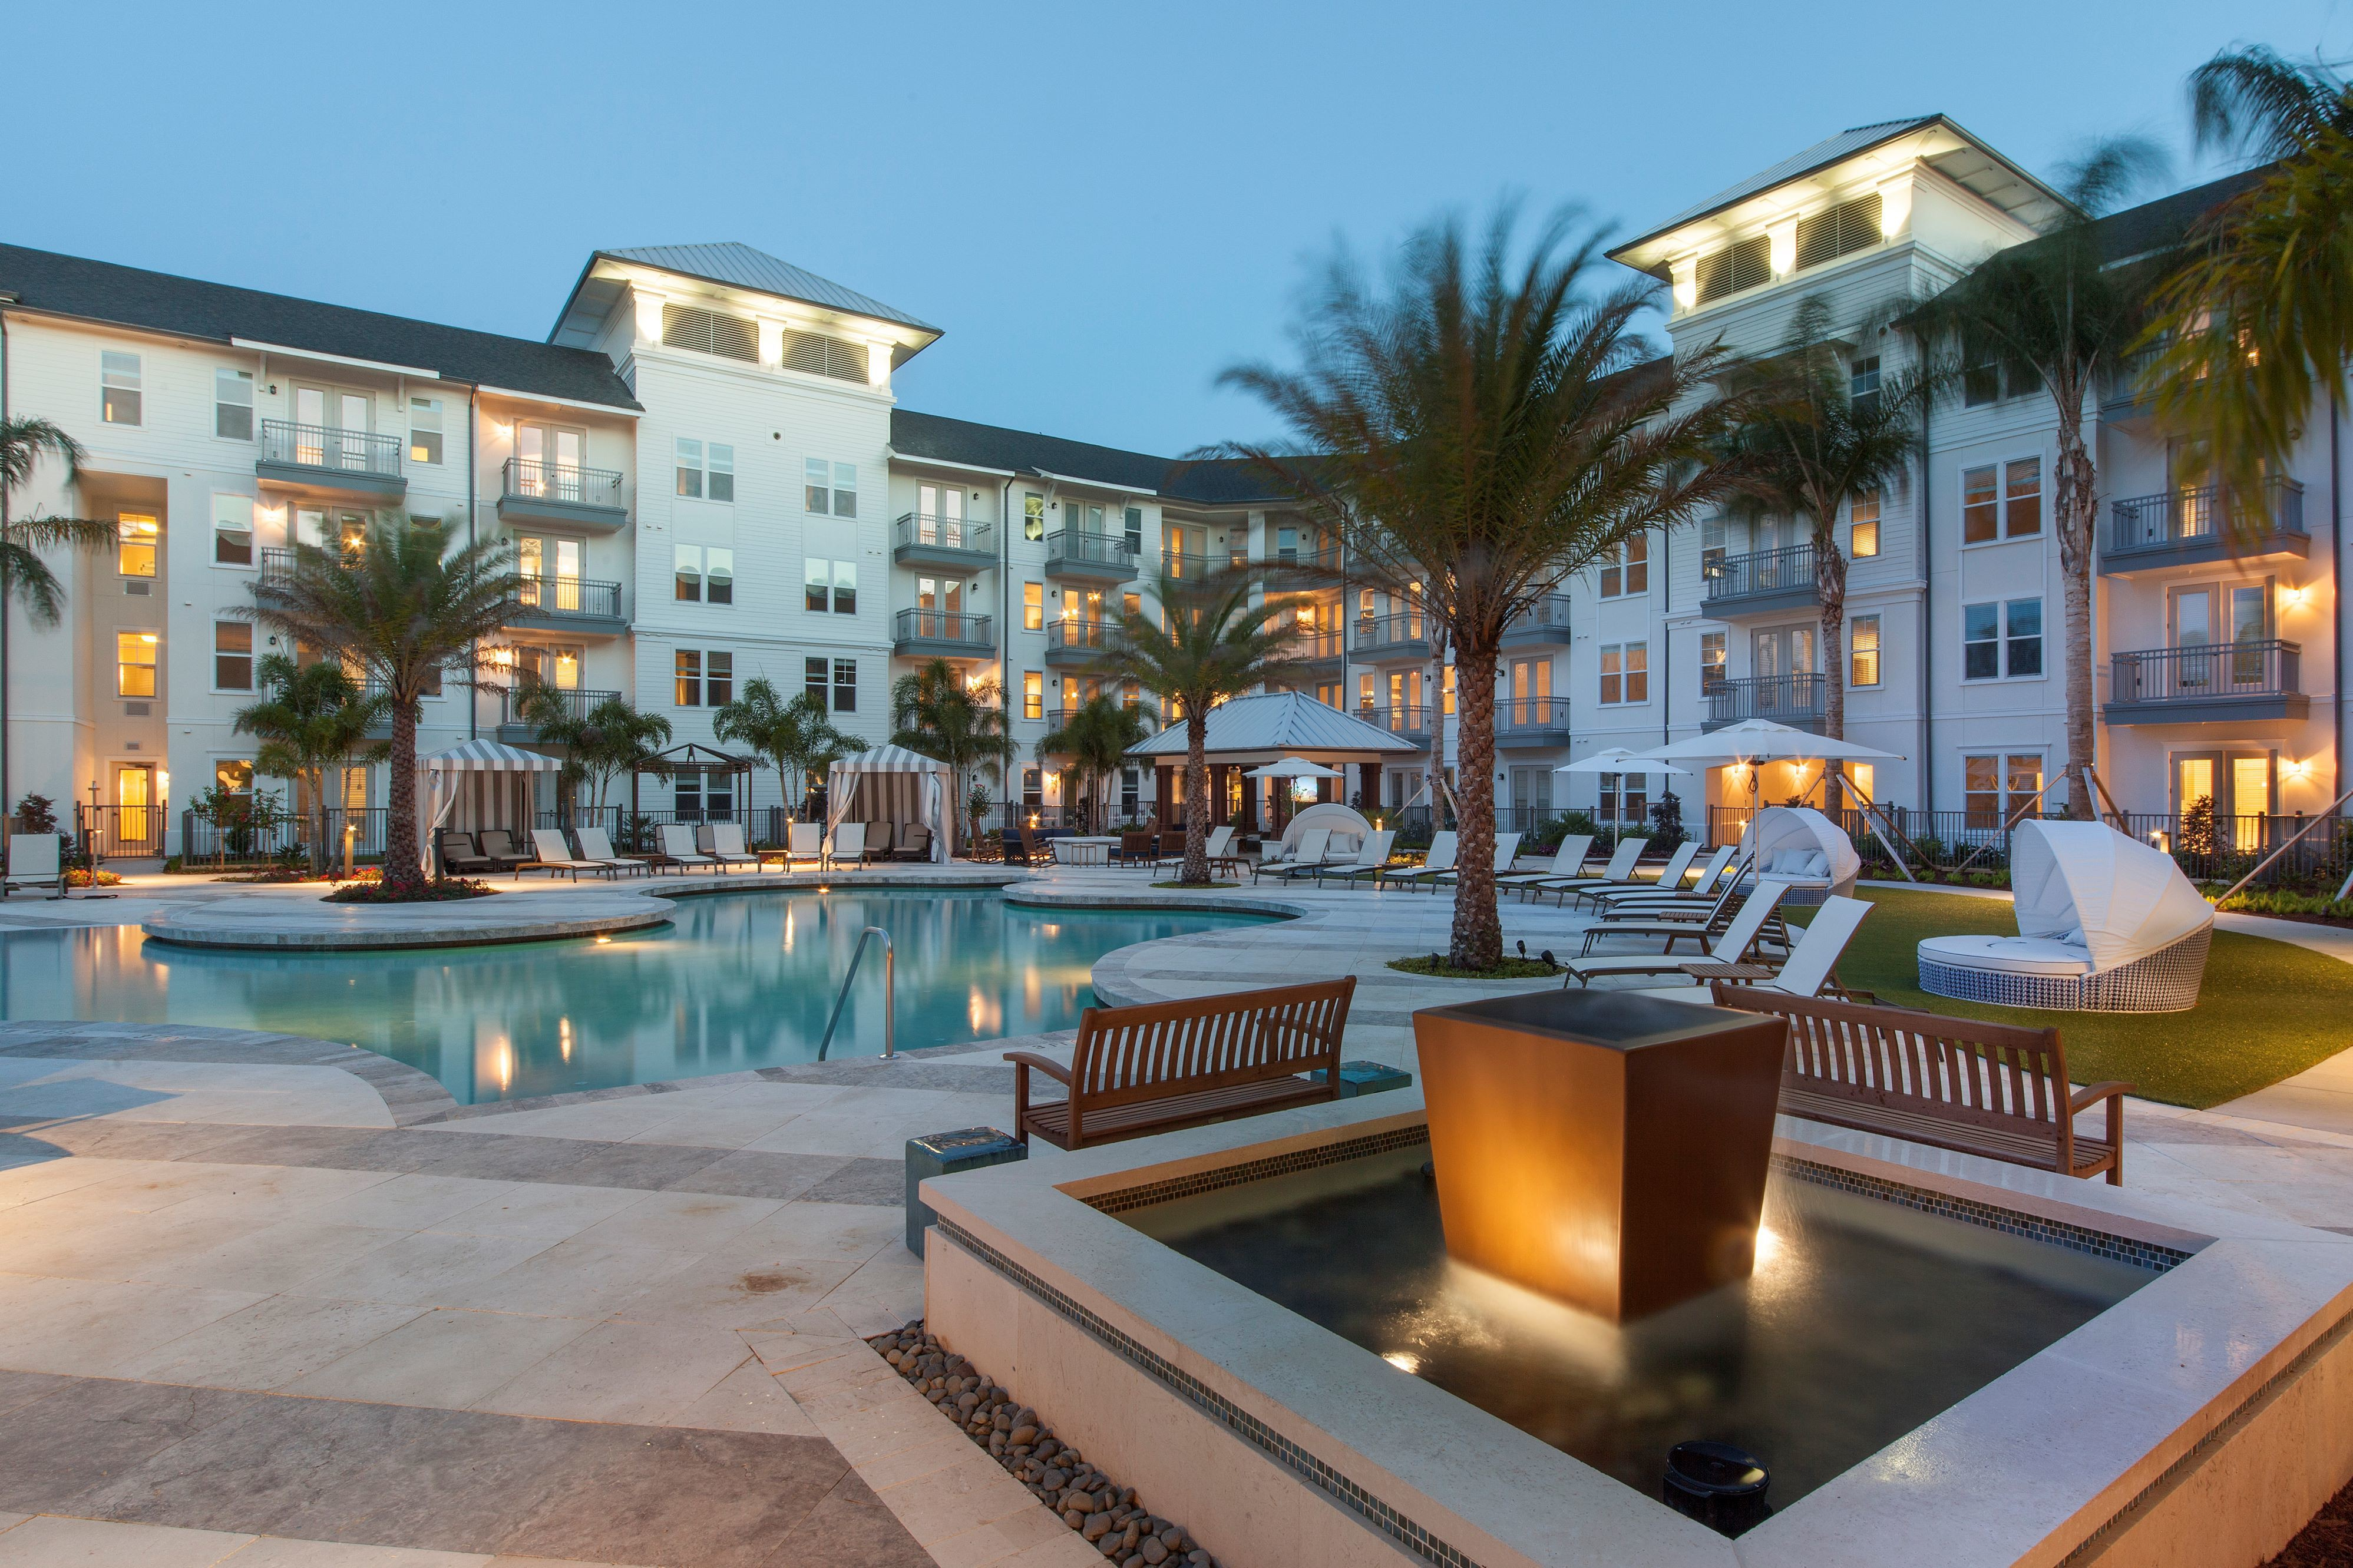 Apartments Near UCF Baldwin Harbor for University of Central Florida Students in Orlando, FL